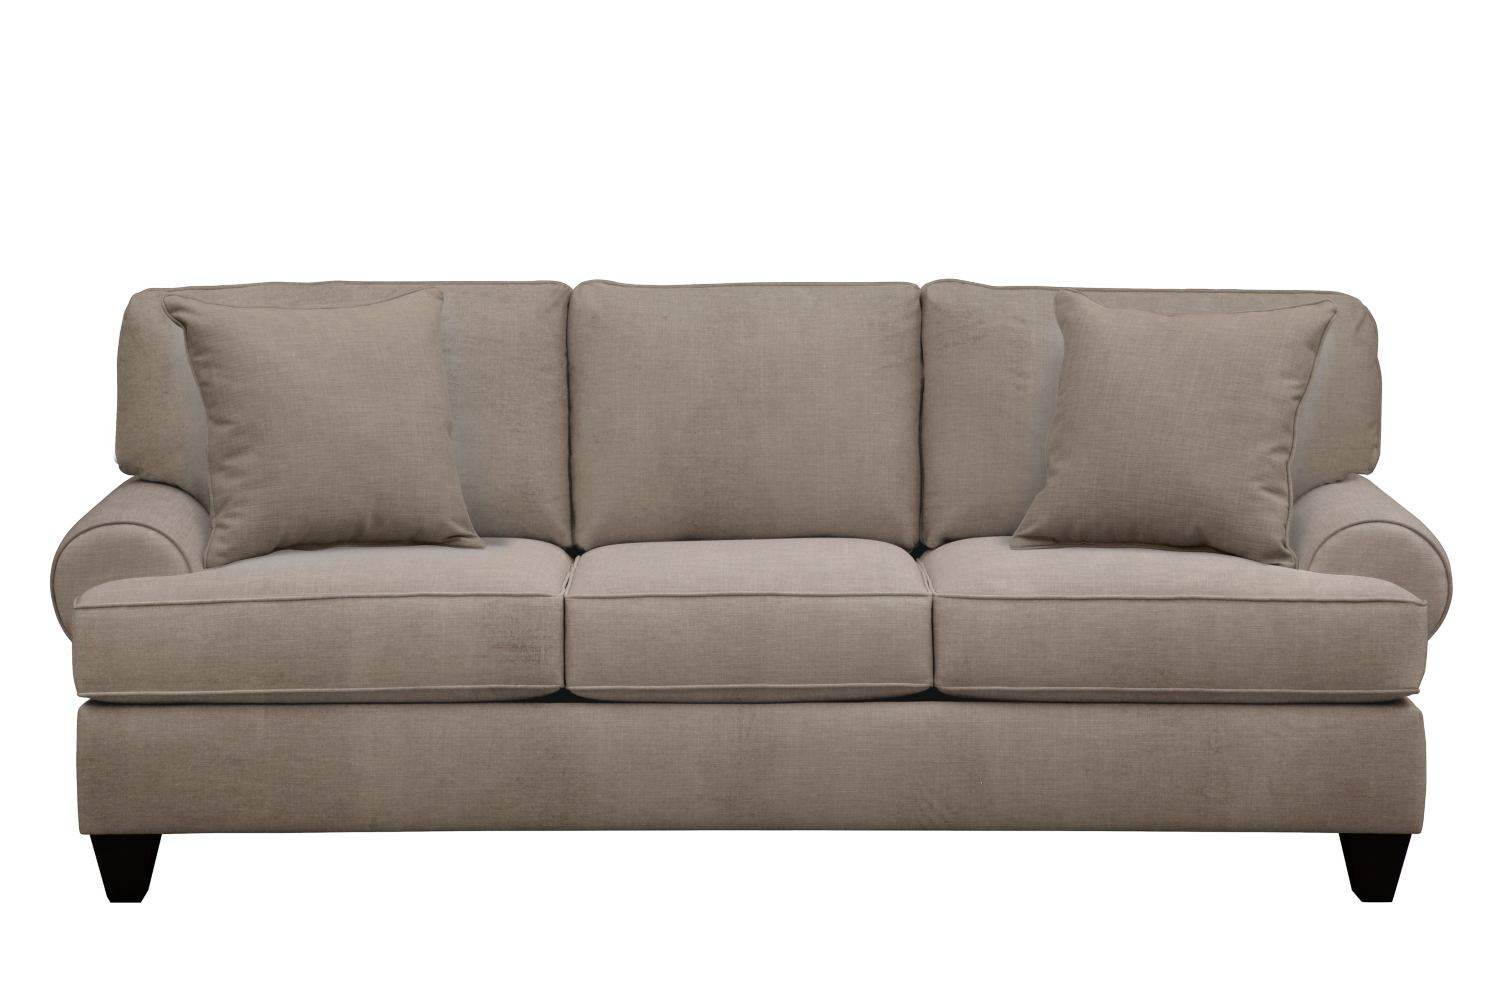 "Living Room Furniture - Bailey Roll Arm Sofa 91"" Oakley III Granite w/ Oakley III Granite Pillow"